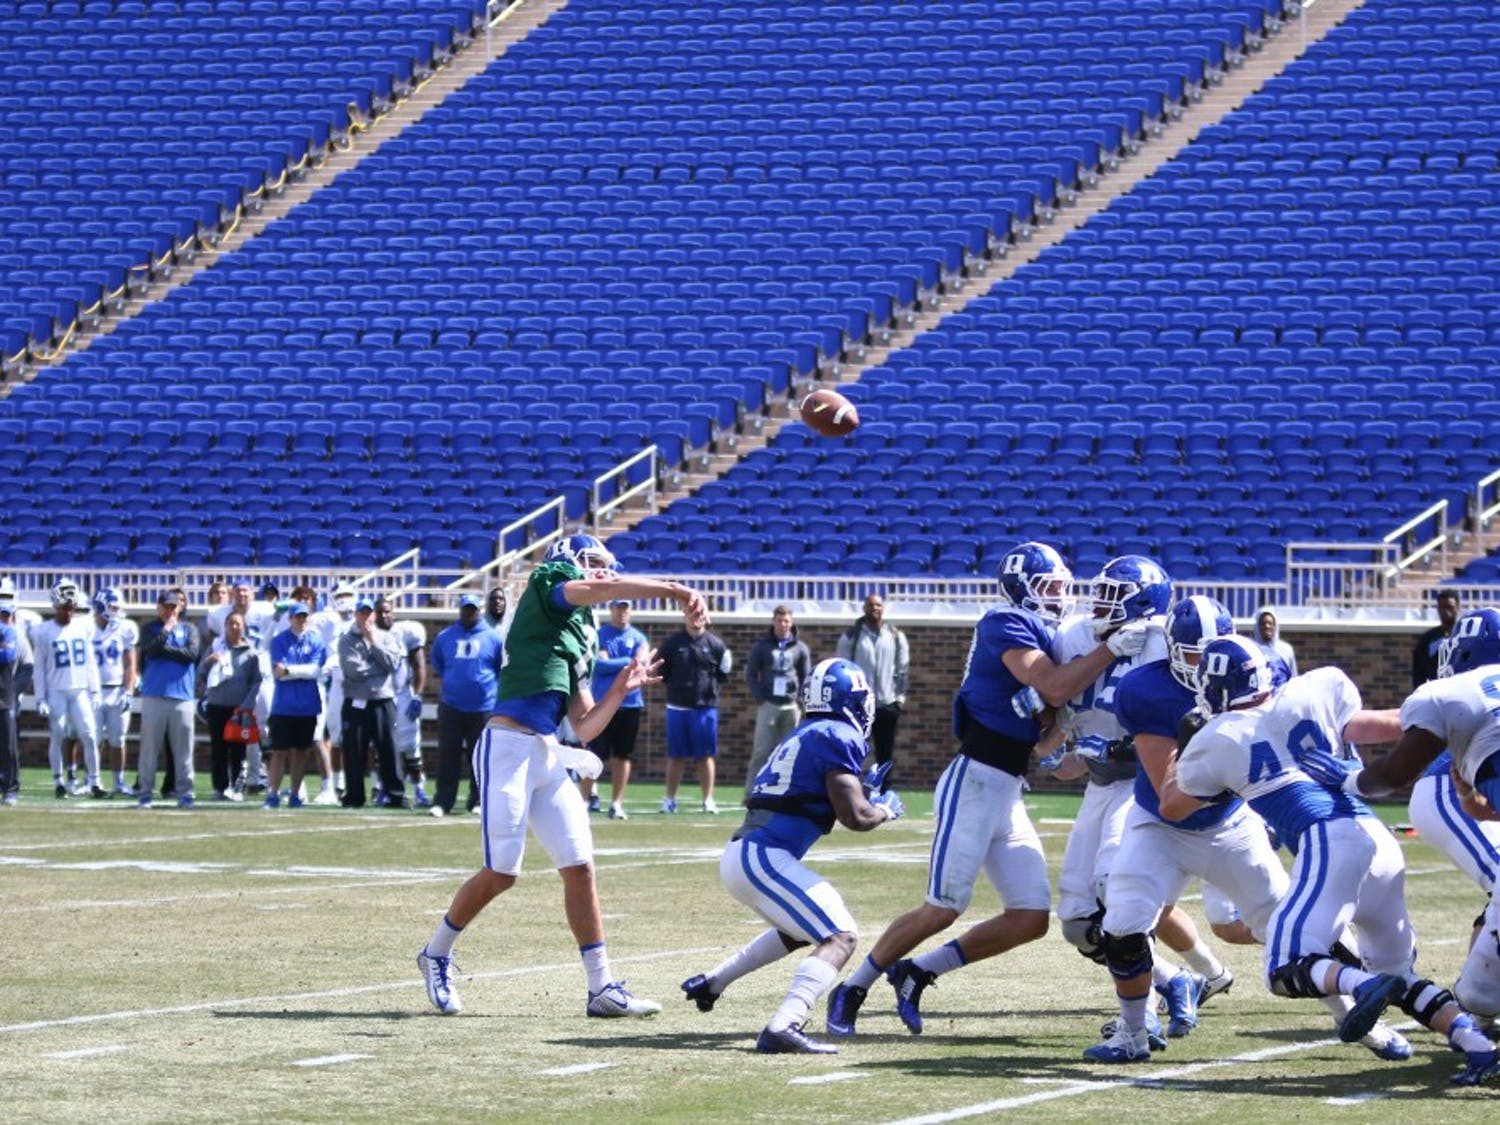 Redshirt freshman quarterback Daniel Jones connected with wide receiver Chris Taylor from eight yards out for a touchdown during Saturday's scrimmage.